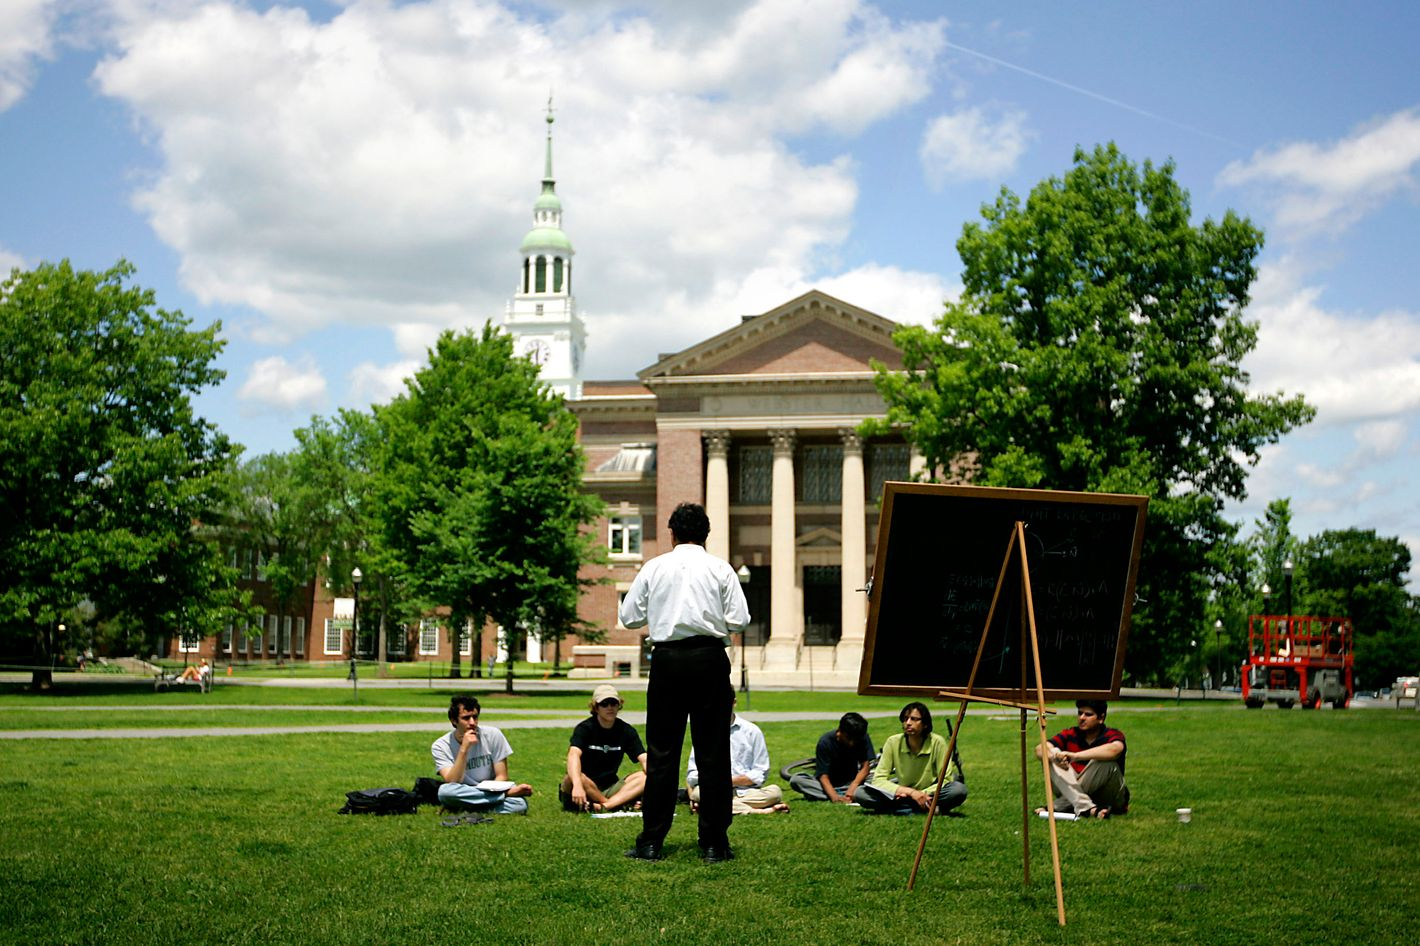 UNITED STATES - JUNE 02:  A group of students meet on the lawn outside Webster Hall on the campus of Dartmouth College, the smallest school in the Ivy League, in Hanover, New Hampshire, U.S., on Tuesday, June 2, 2009. Dartmouth, whose endowment was valued at $3.7 billion as of June 30, likely lost about 23 percent from that point through the end of March, Moody's Investors Service said May 27.  (Photo by Cheryl Senter/Bloomberg via Getty Images)